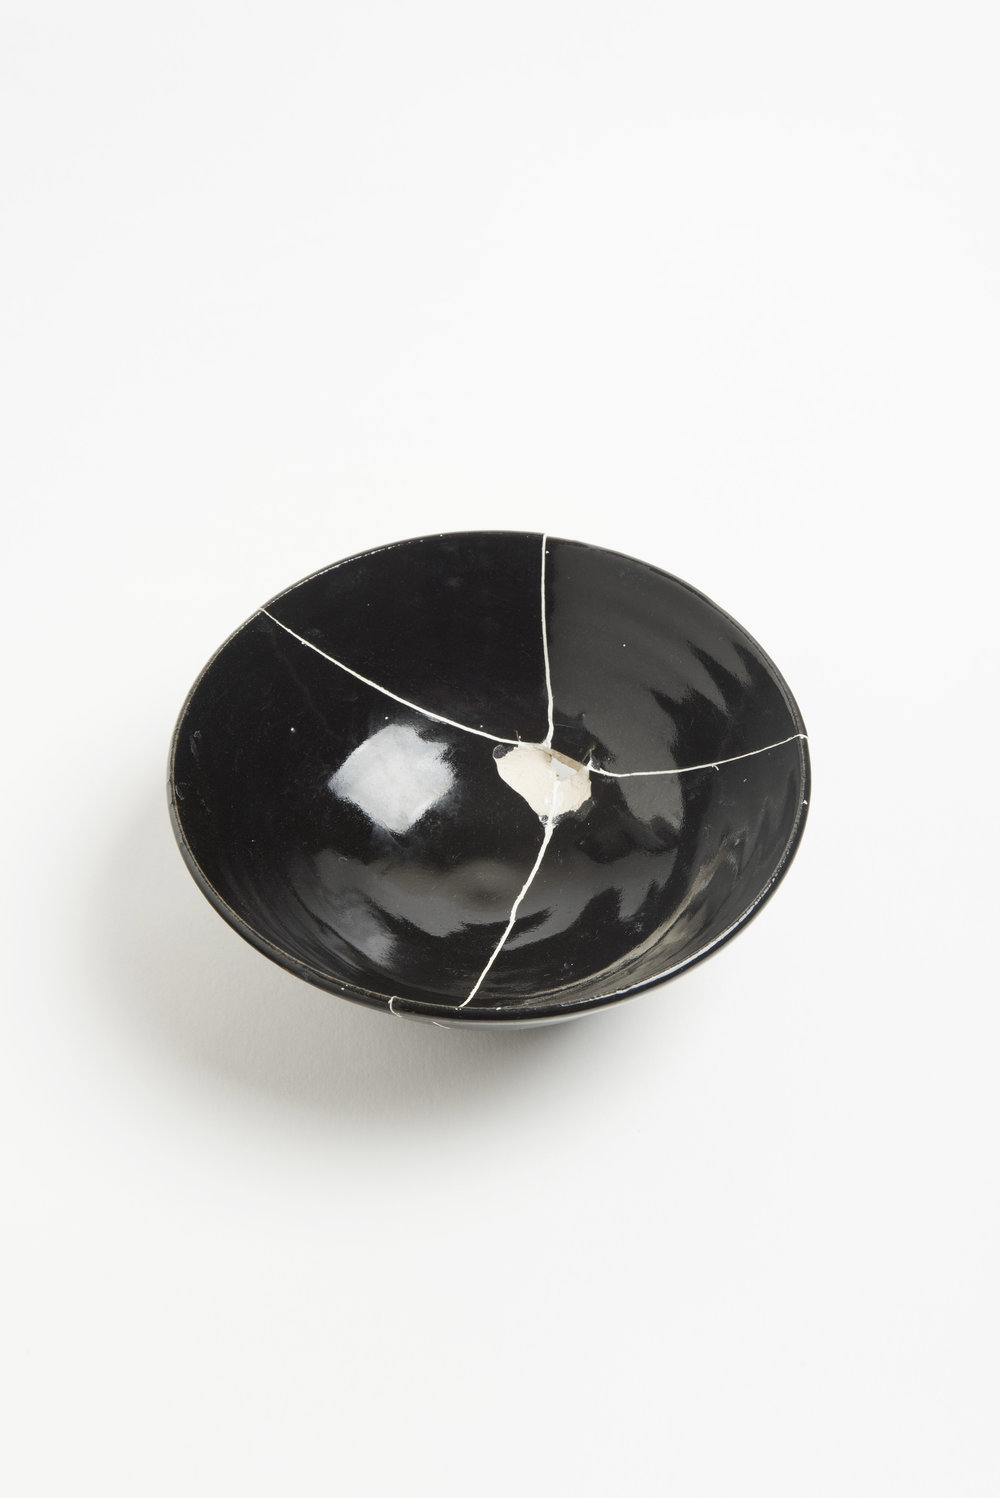 black-fracture-series-bowl-romy-northover-ceramics-the-garnered-62.jpg